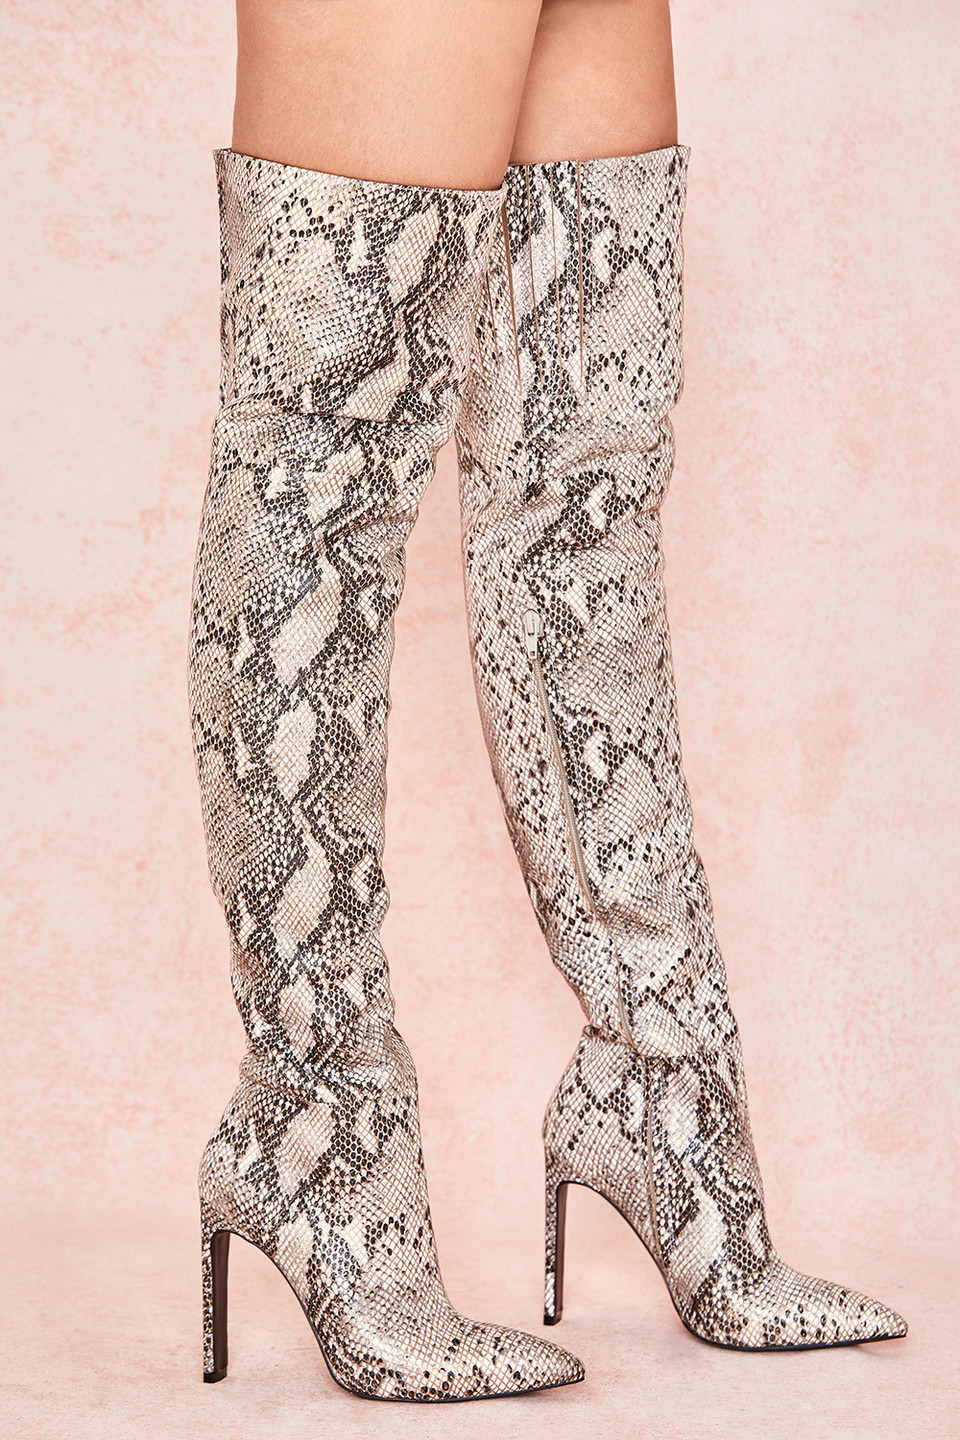 Dancer Snakeskin Thigh High Boots